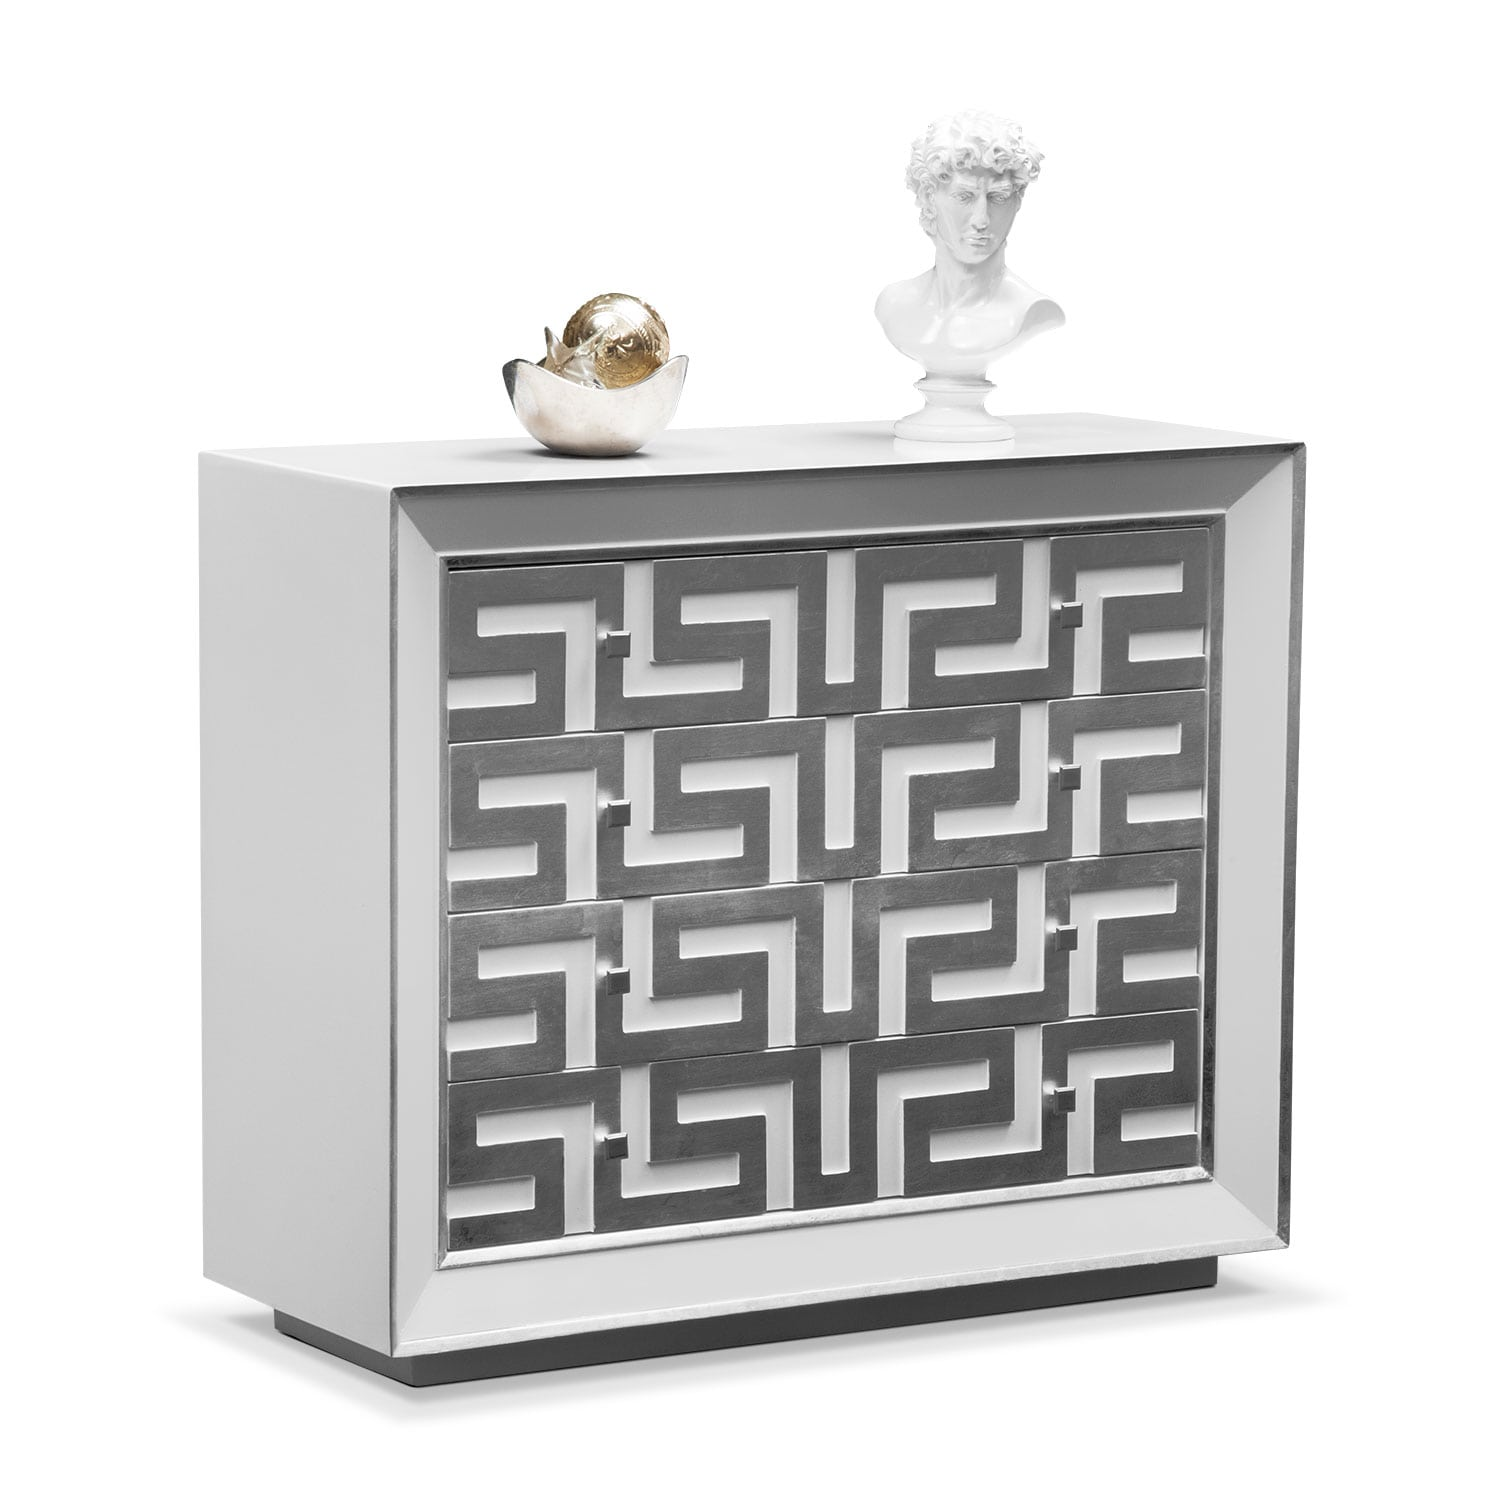 Halston Bachelor Chest - Silver